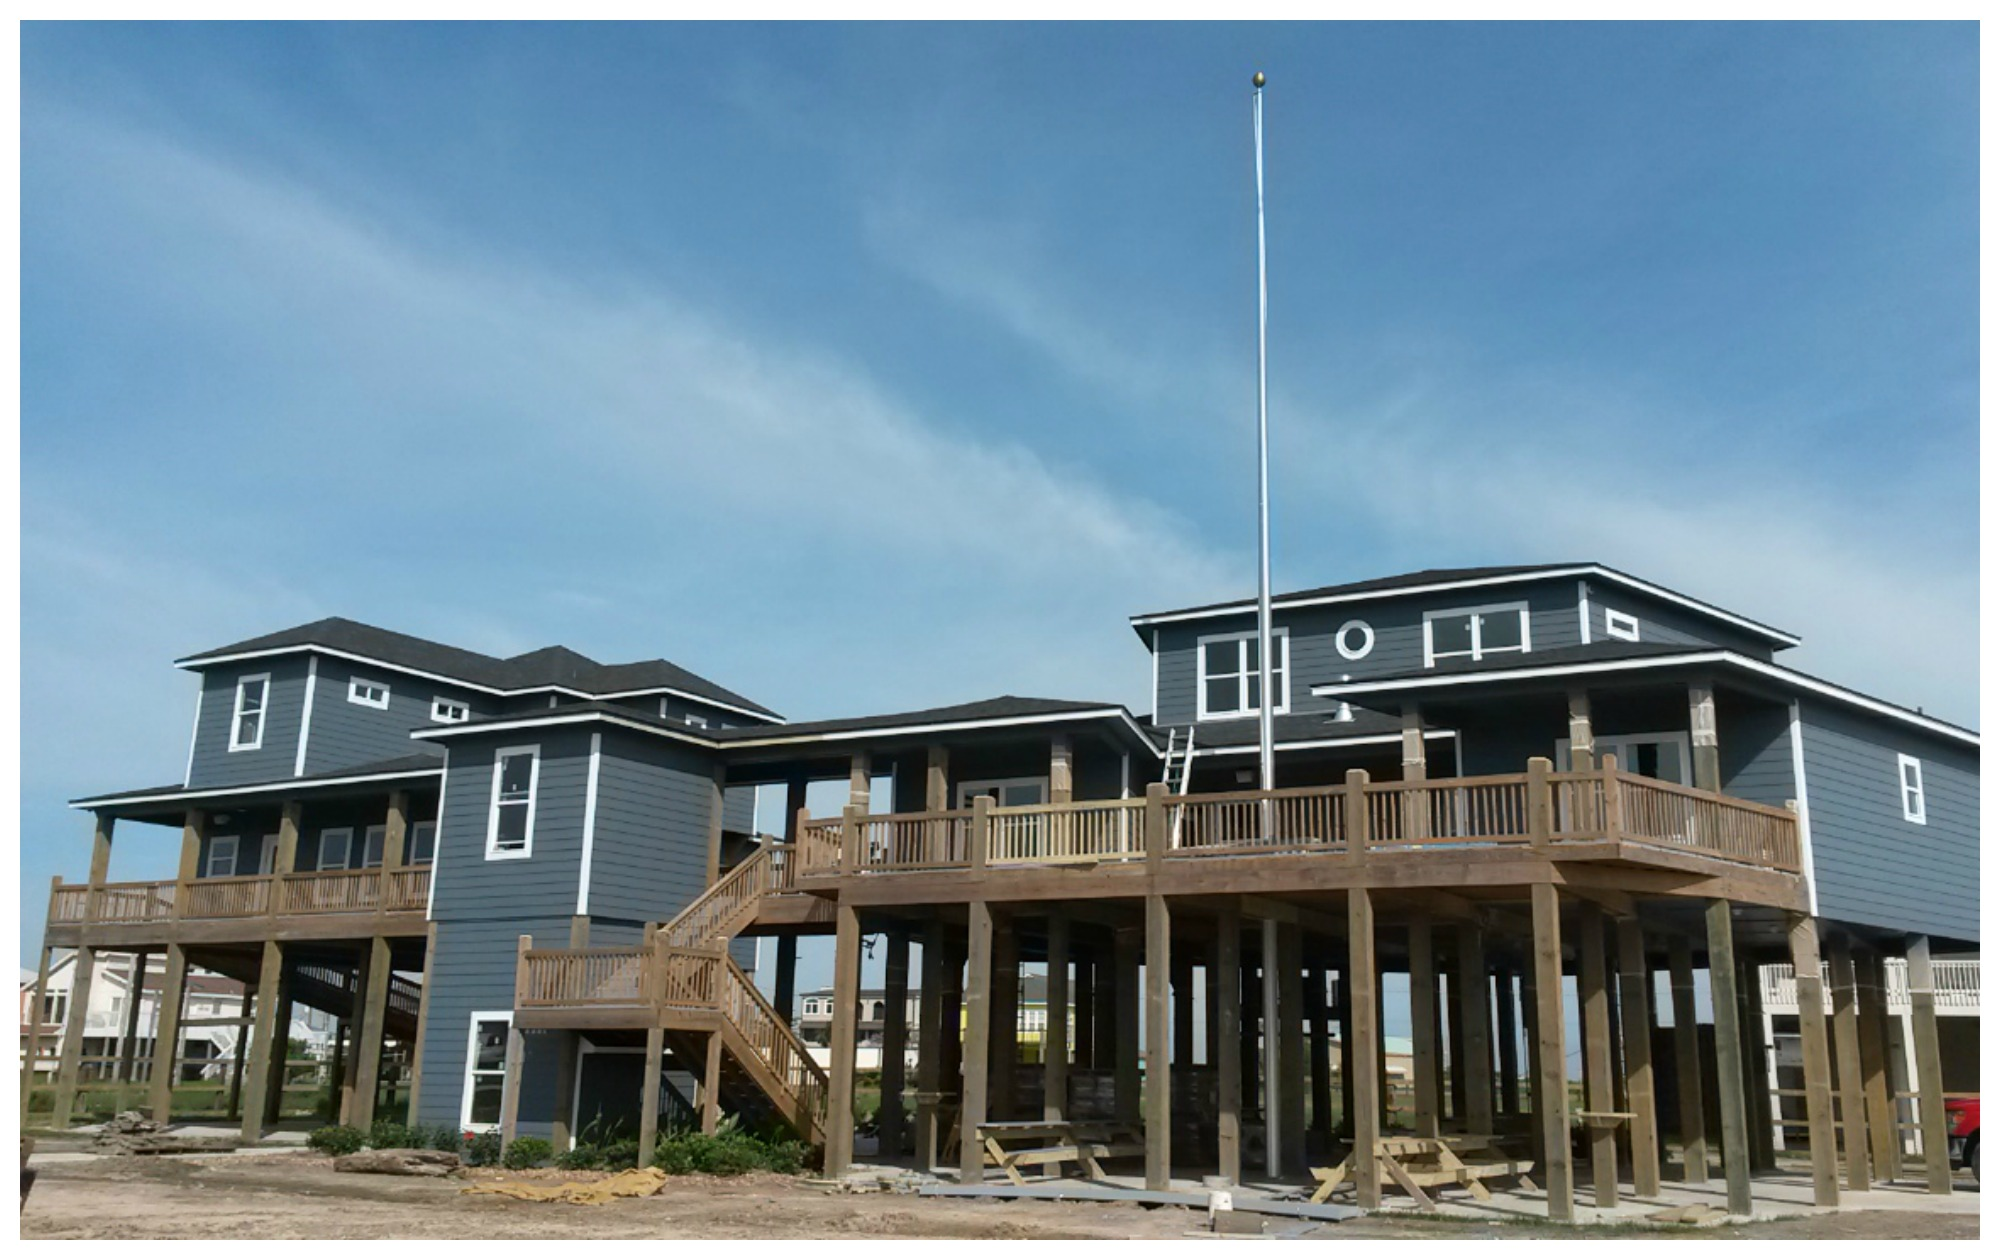 April 23, 2015 - Coming in at just under one year from ground breaking to grand opening, the Lone Survivor Foundation Crystal Beach Retreat Facility stands tall.